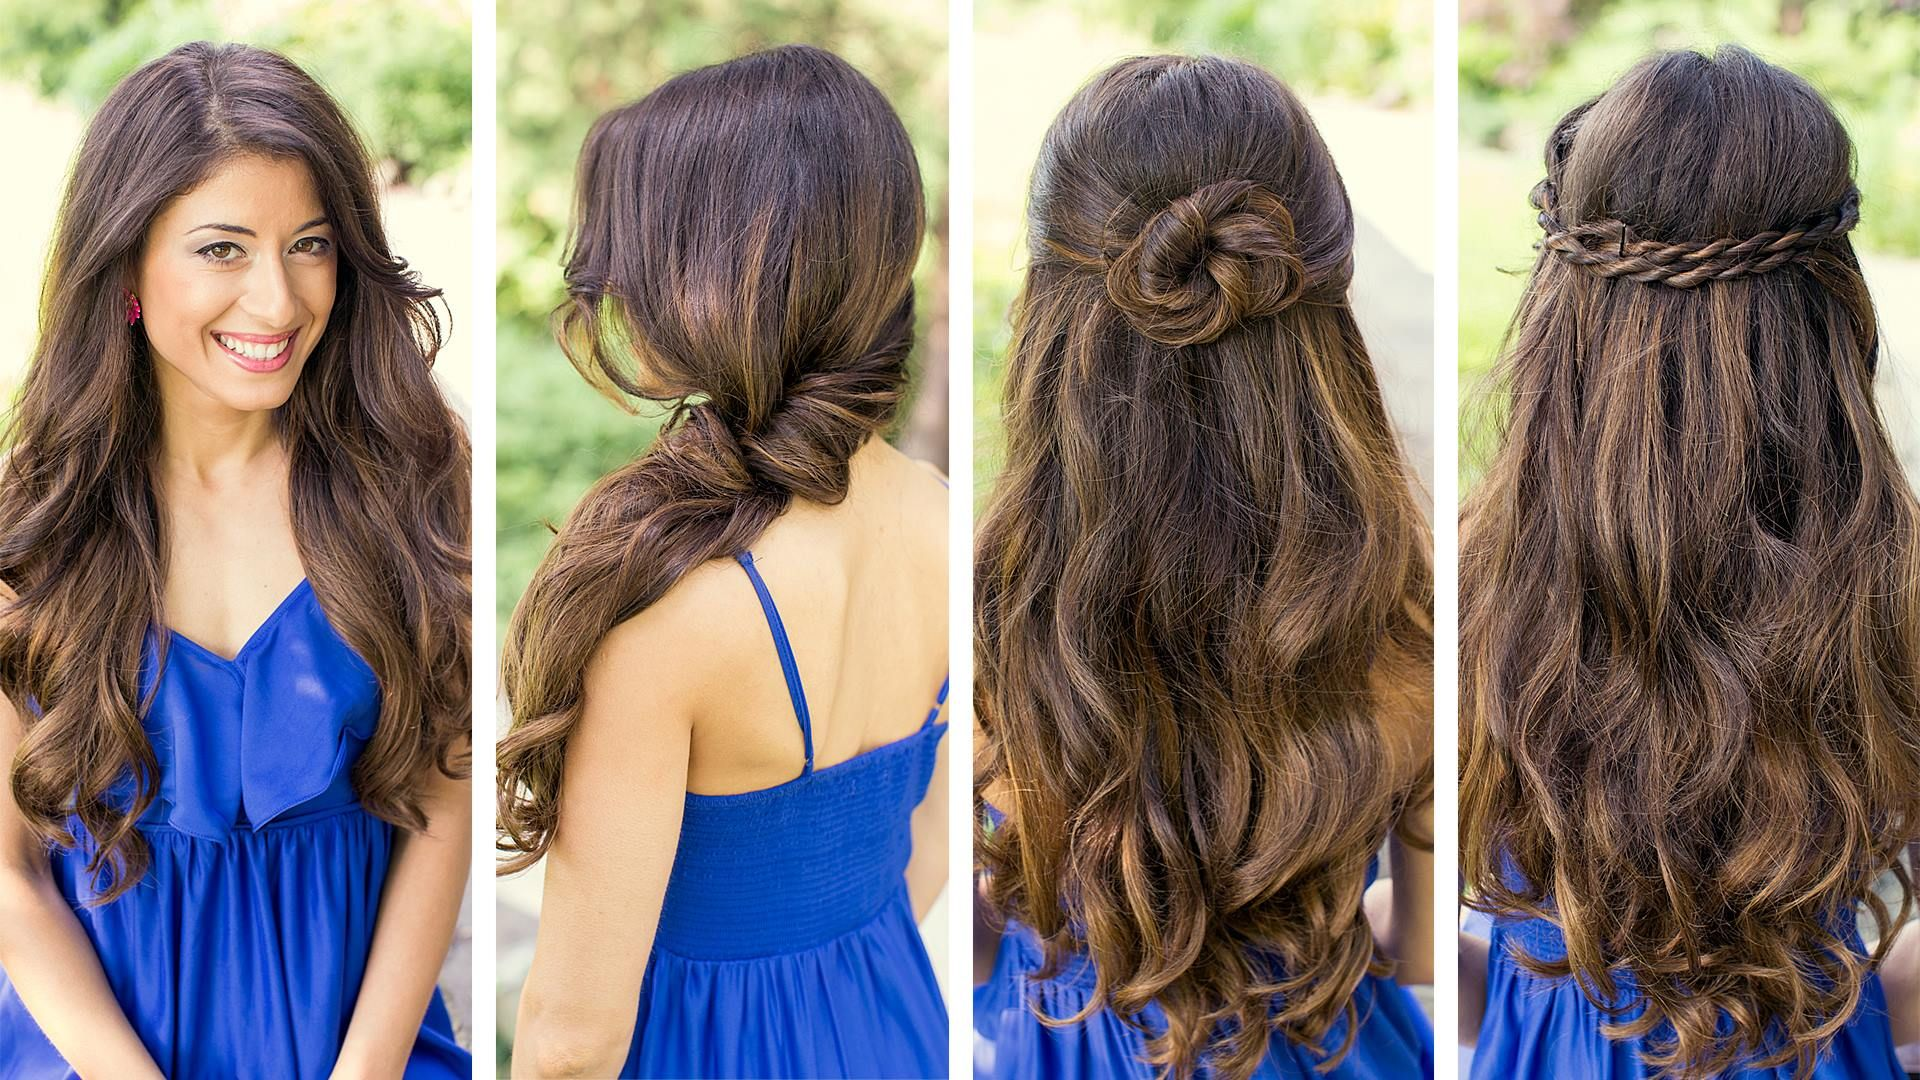 Cute hairstyles cute and easy hairstyles long hair hairstyles